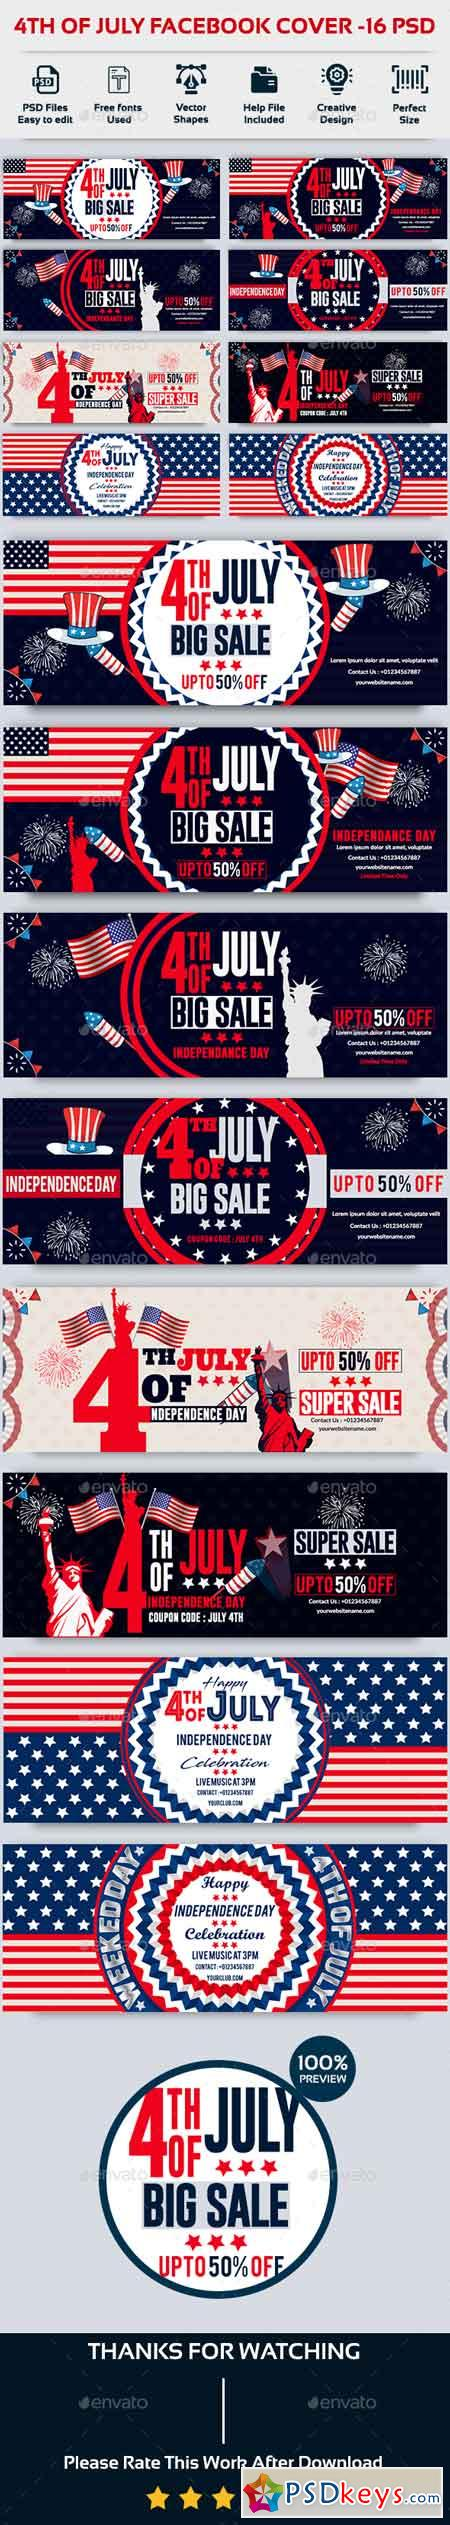 4th of July Facebook Cover-Bundle-16 PSD 22208538